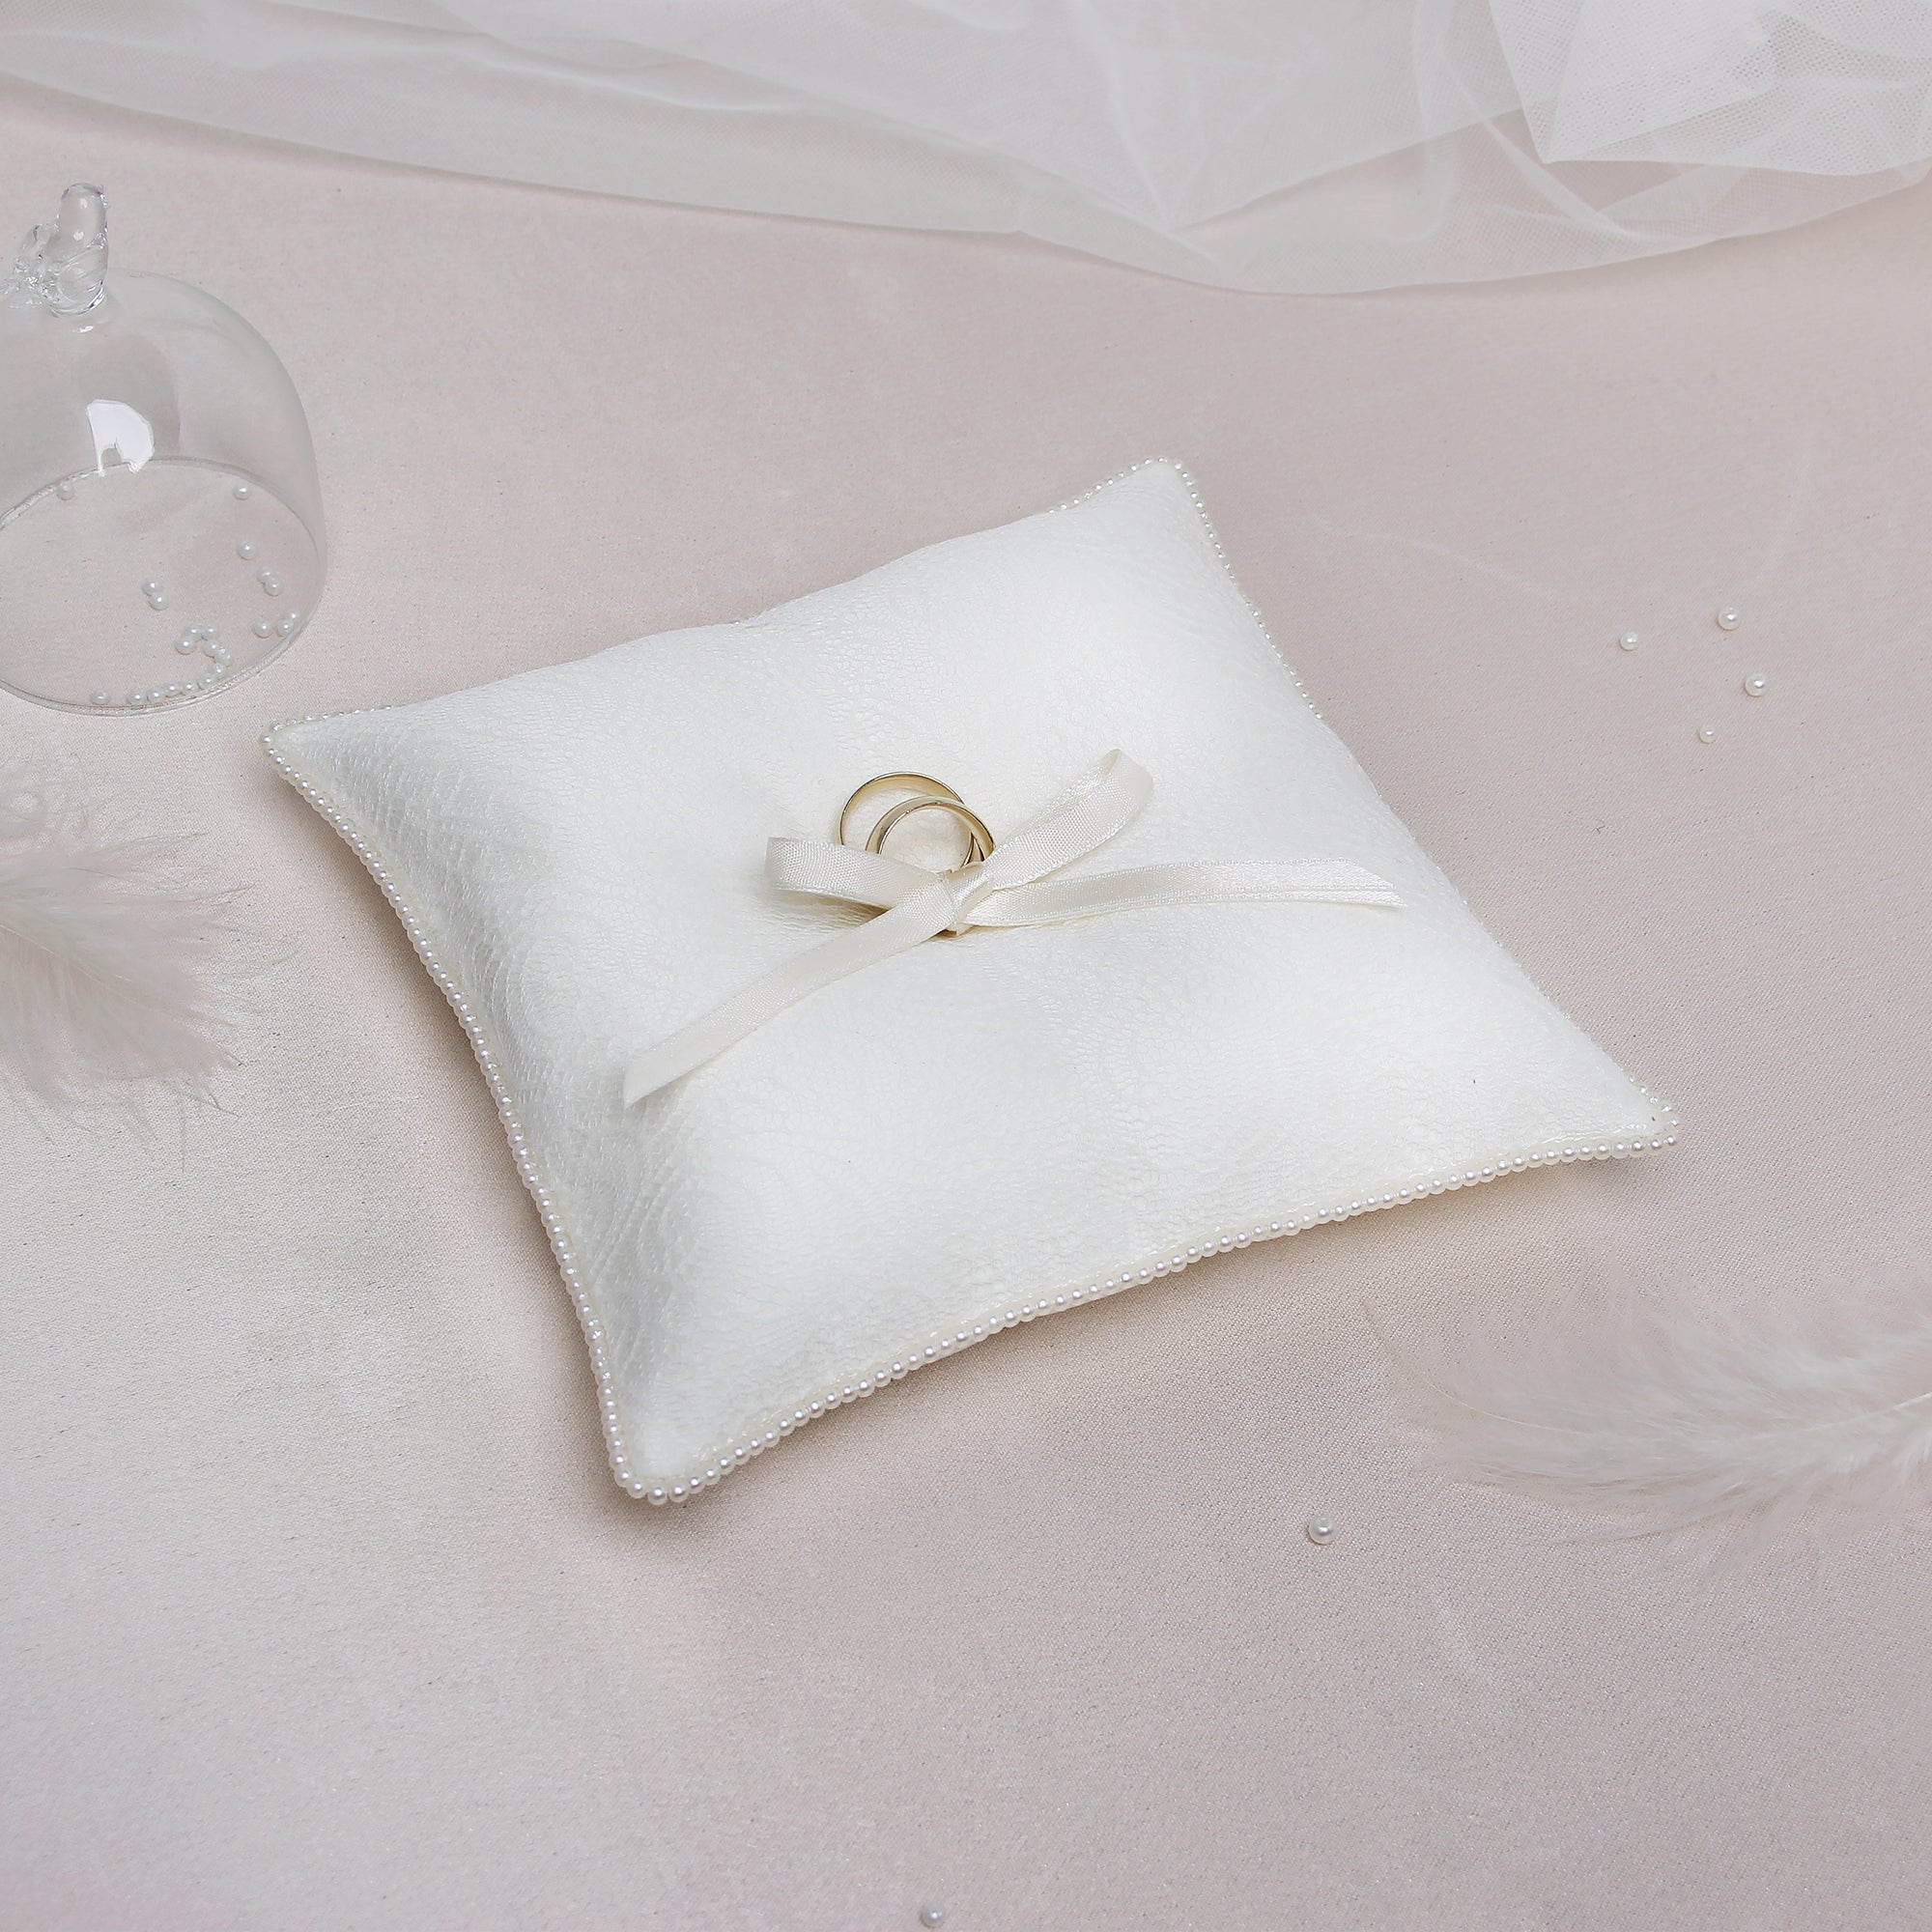 Wedding Ring Pillow Ivory Bands - Liumy